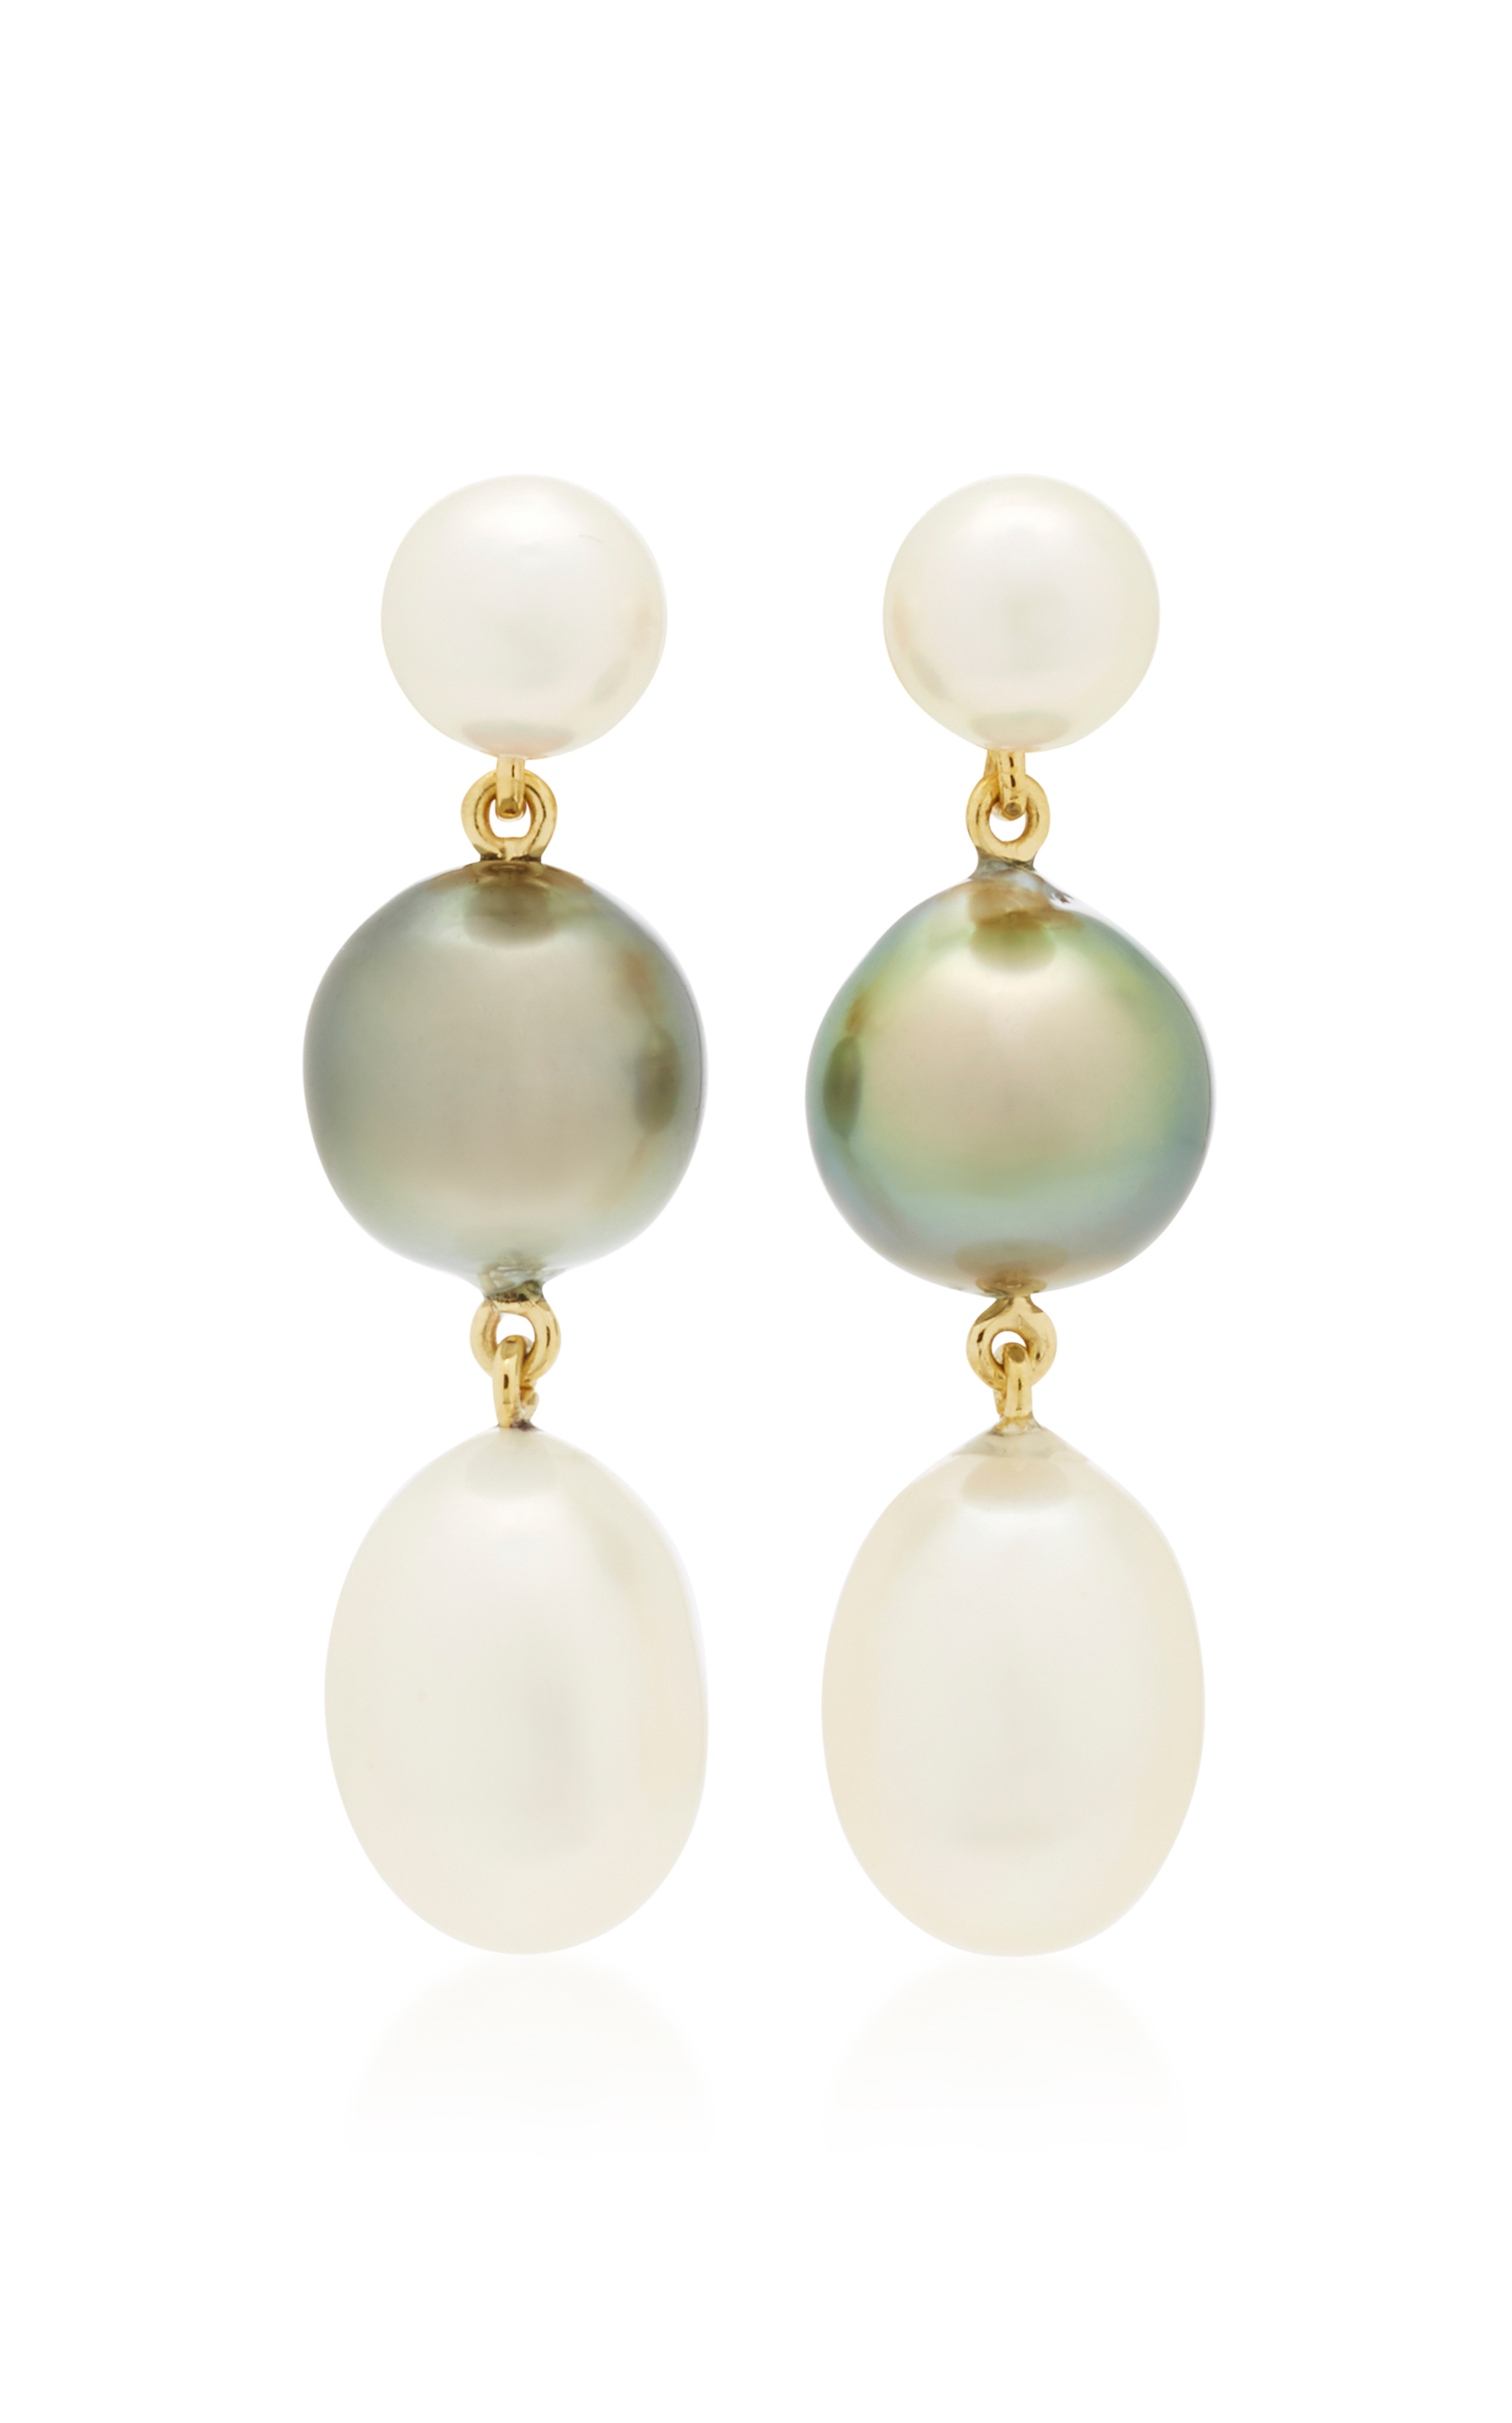 com product earrings yolandejimenez parel lava solana img pearl baroque necklace real